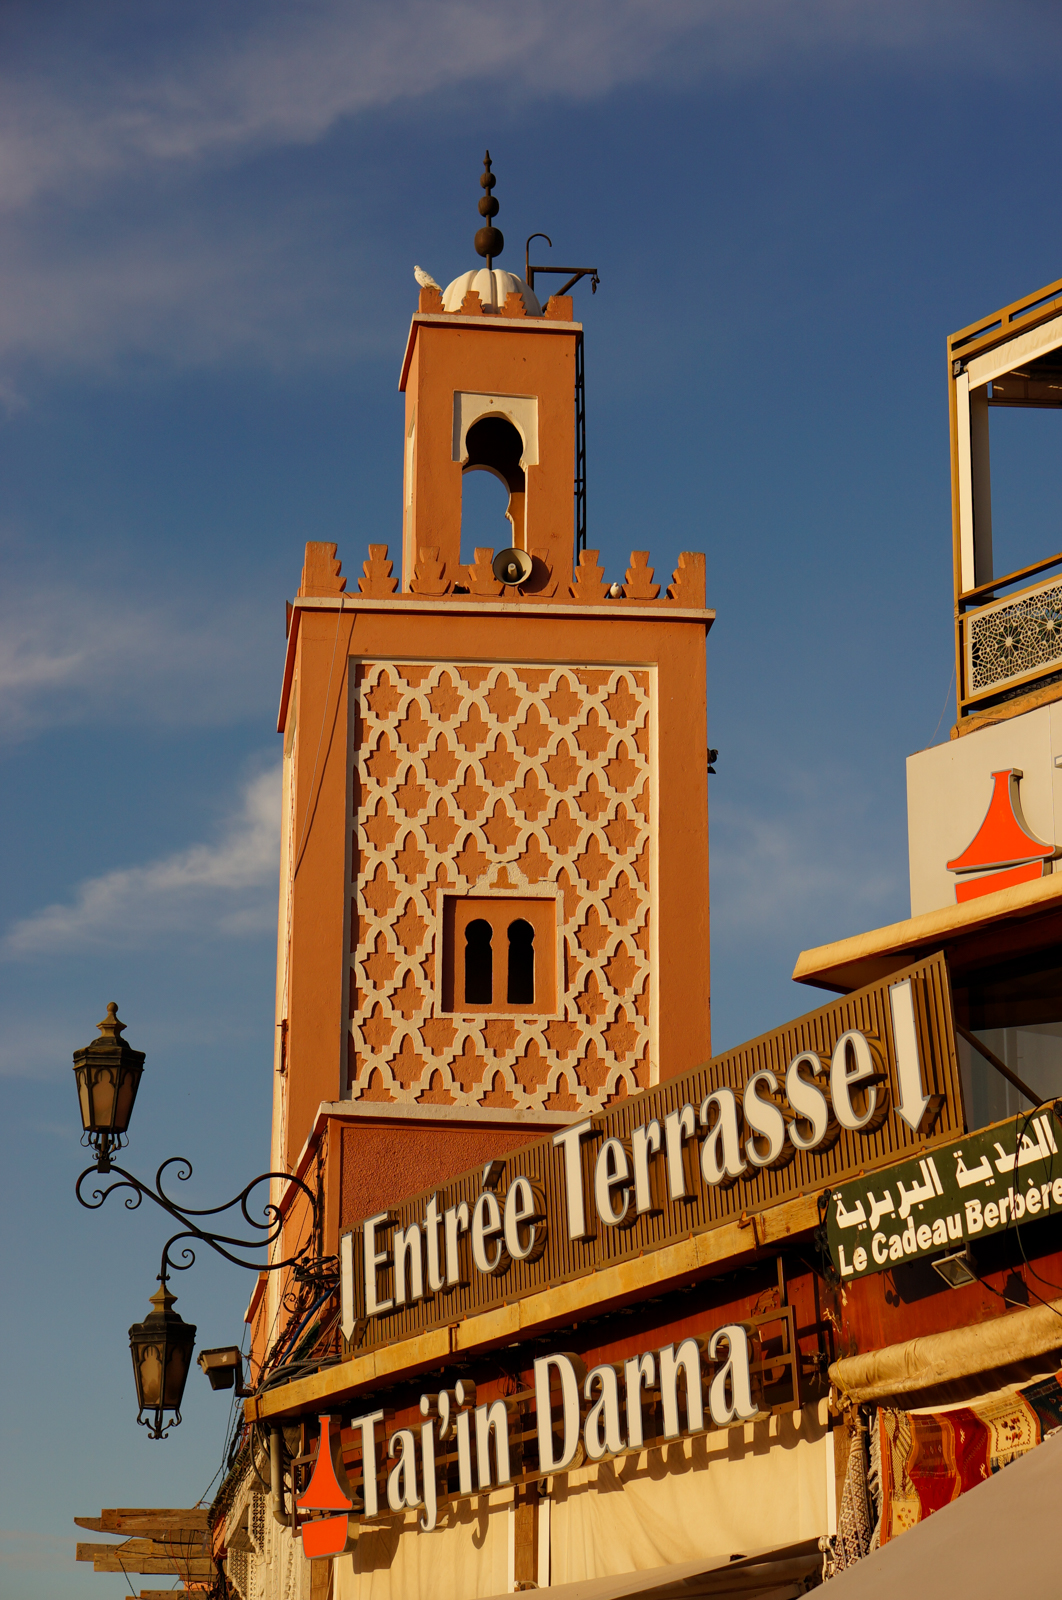 marrakech, city trip marrakech, city guide marrakech, grand week-end marrakech, idée balade marrakech, blog marrakech, blog marrakech 2019, vacances marrakech, séjour marrakech, voyage marrakech